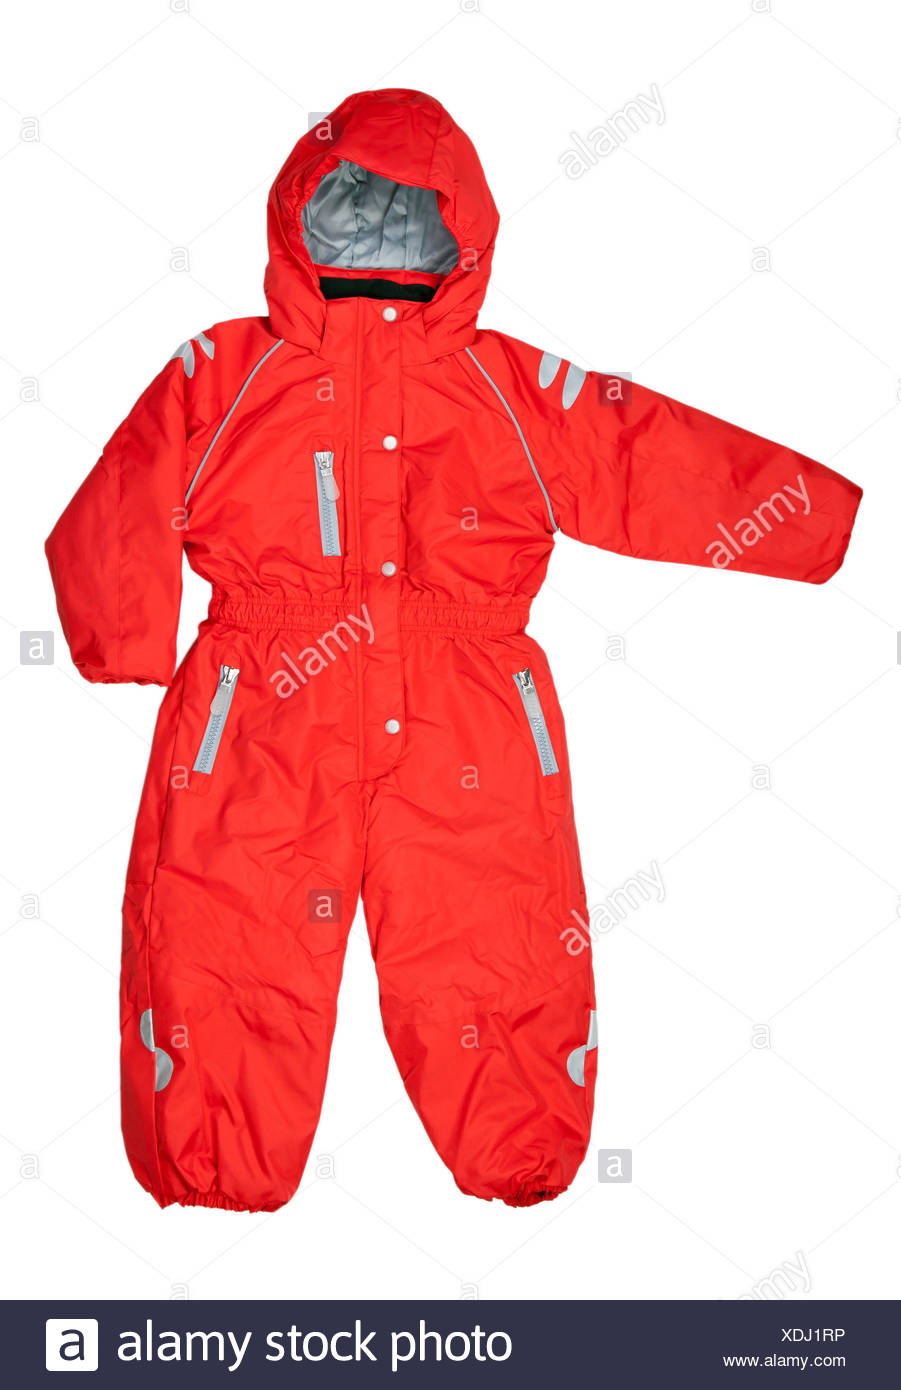 Red Winter rompers - Stock Image